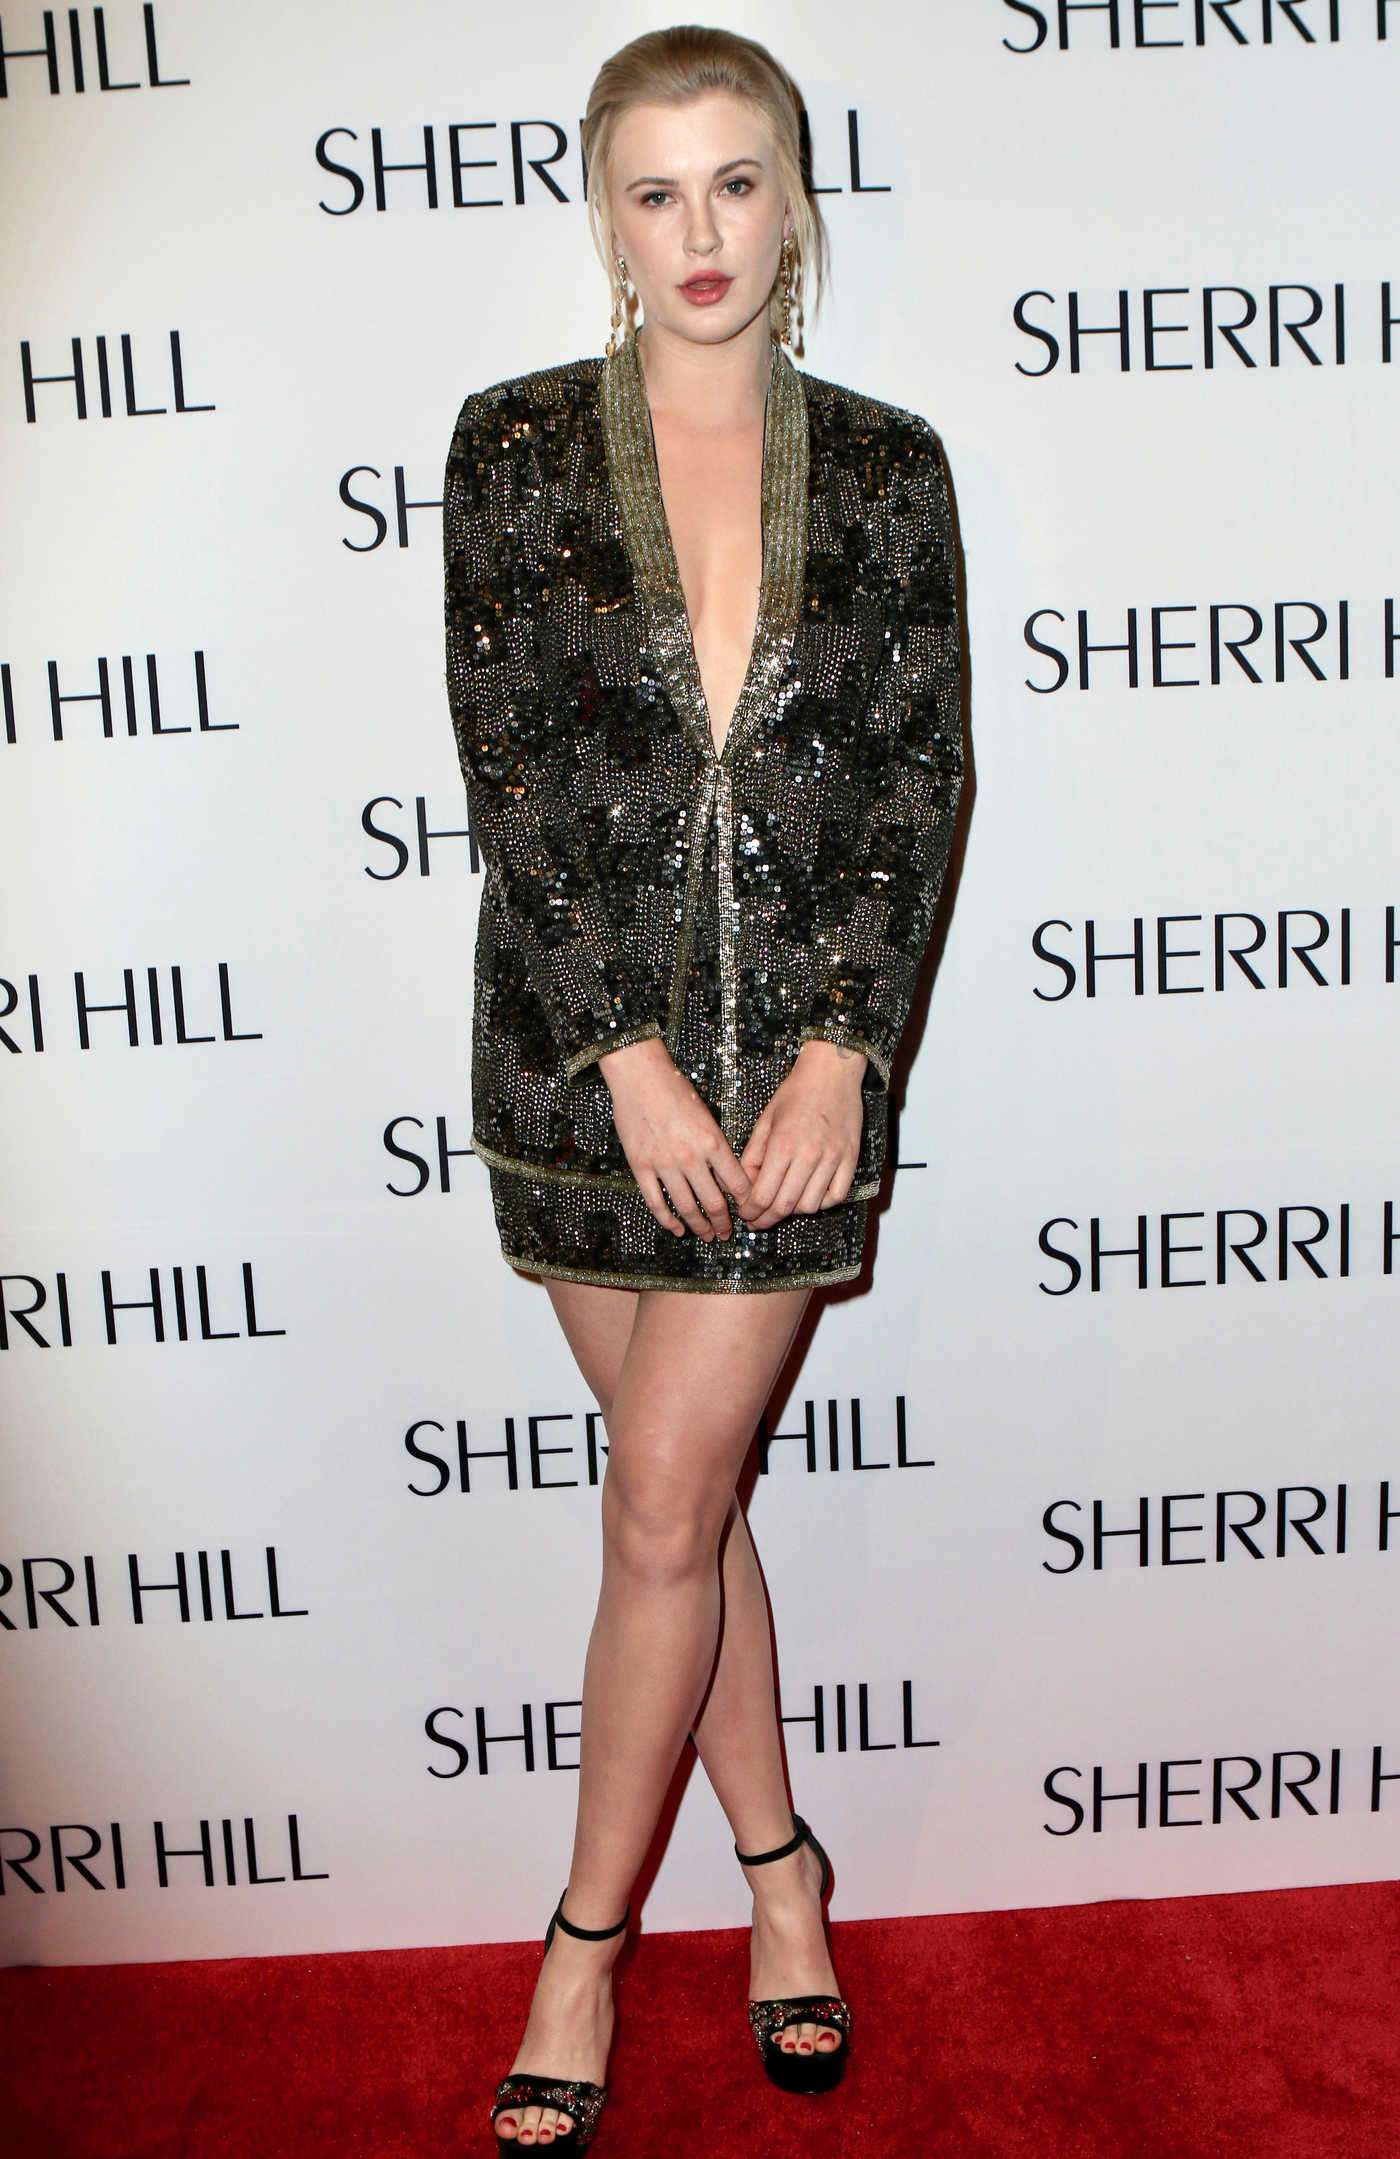 Ireland Baldwin at the Sherri Hill Fashion Show During New York Fashion Week in New York City 02/08/2018